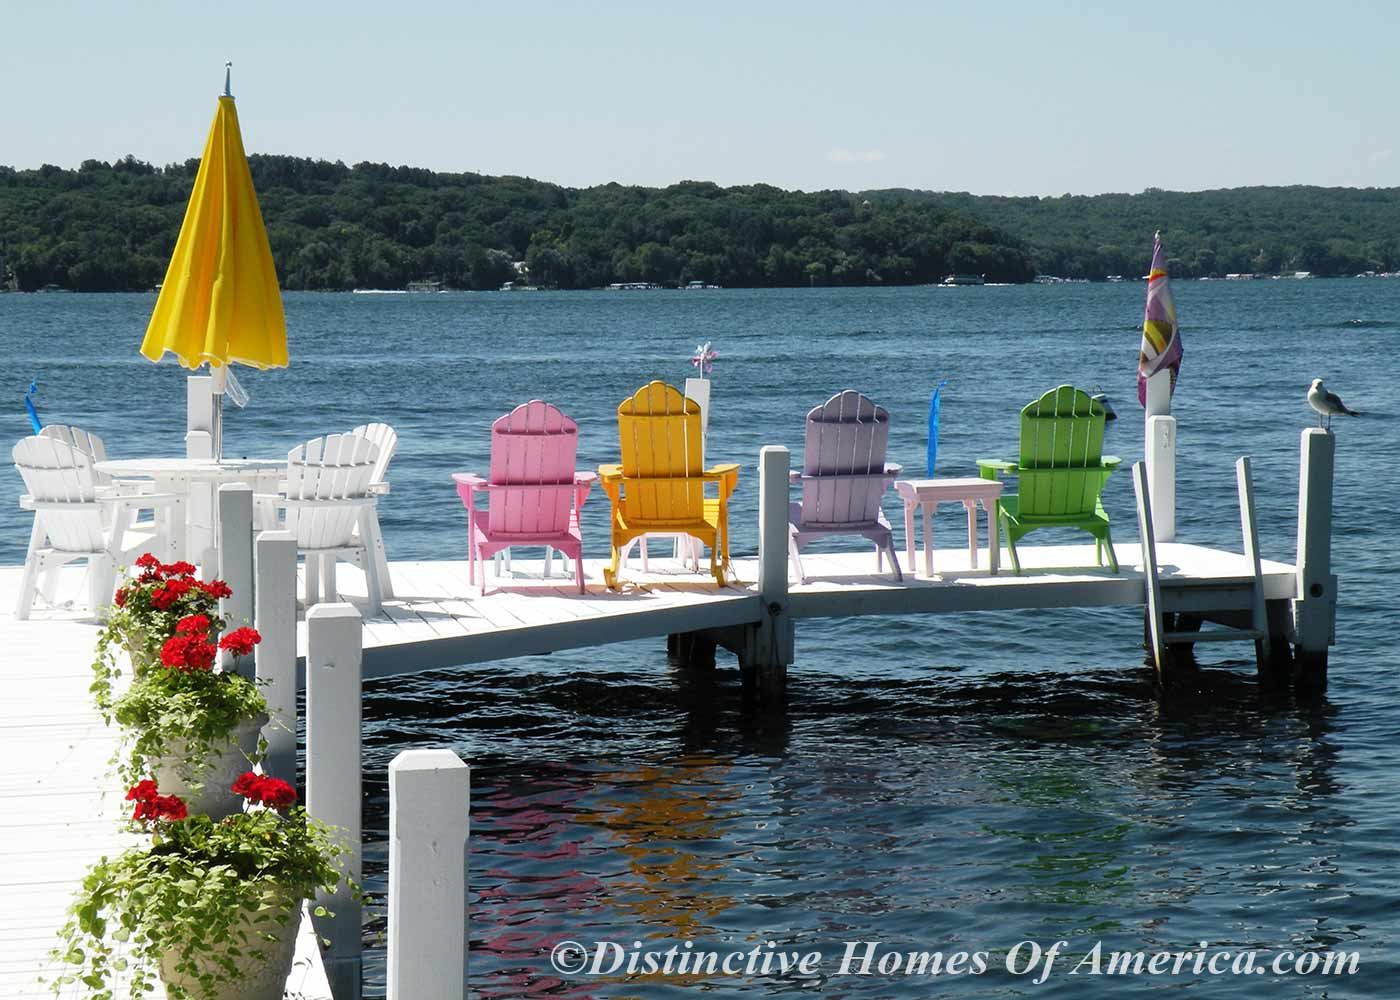 034-LkG-dockChairs_156kb-wm